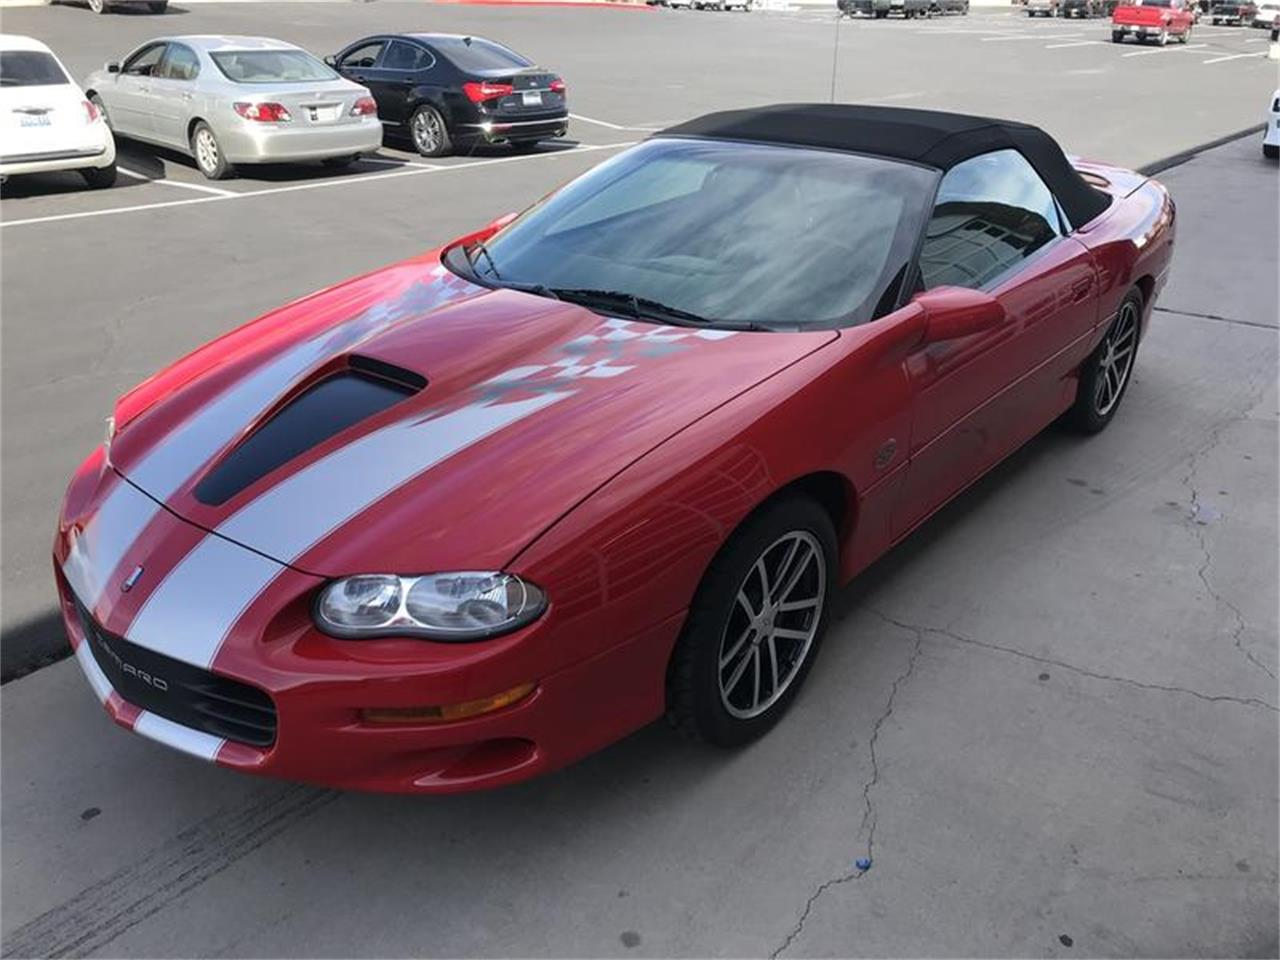 Large Picture of 2002 Chevrolet Camaro SS Z28 - $19,980.00 - Q4TQ